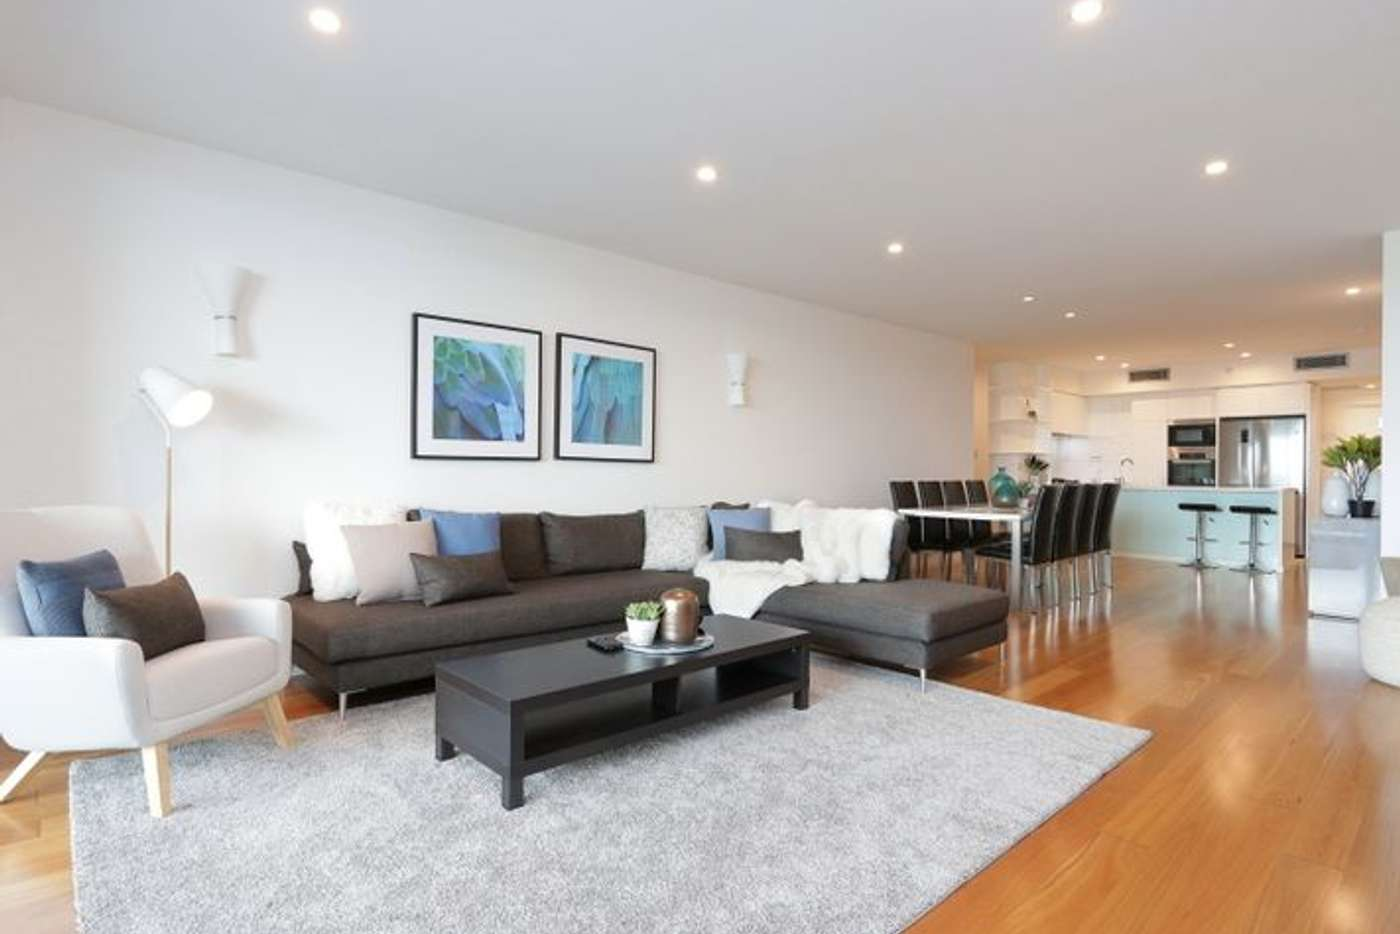 Main view of Homely apartment listing, 26/90 Terrace Road, East Perth WA 6004